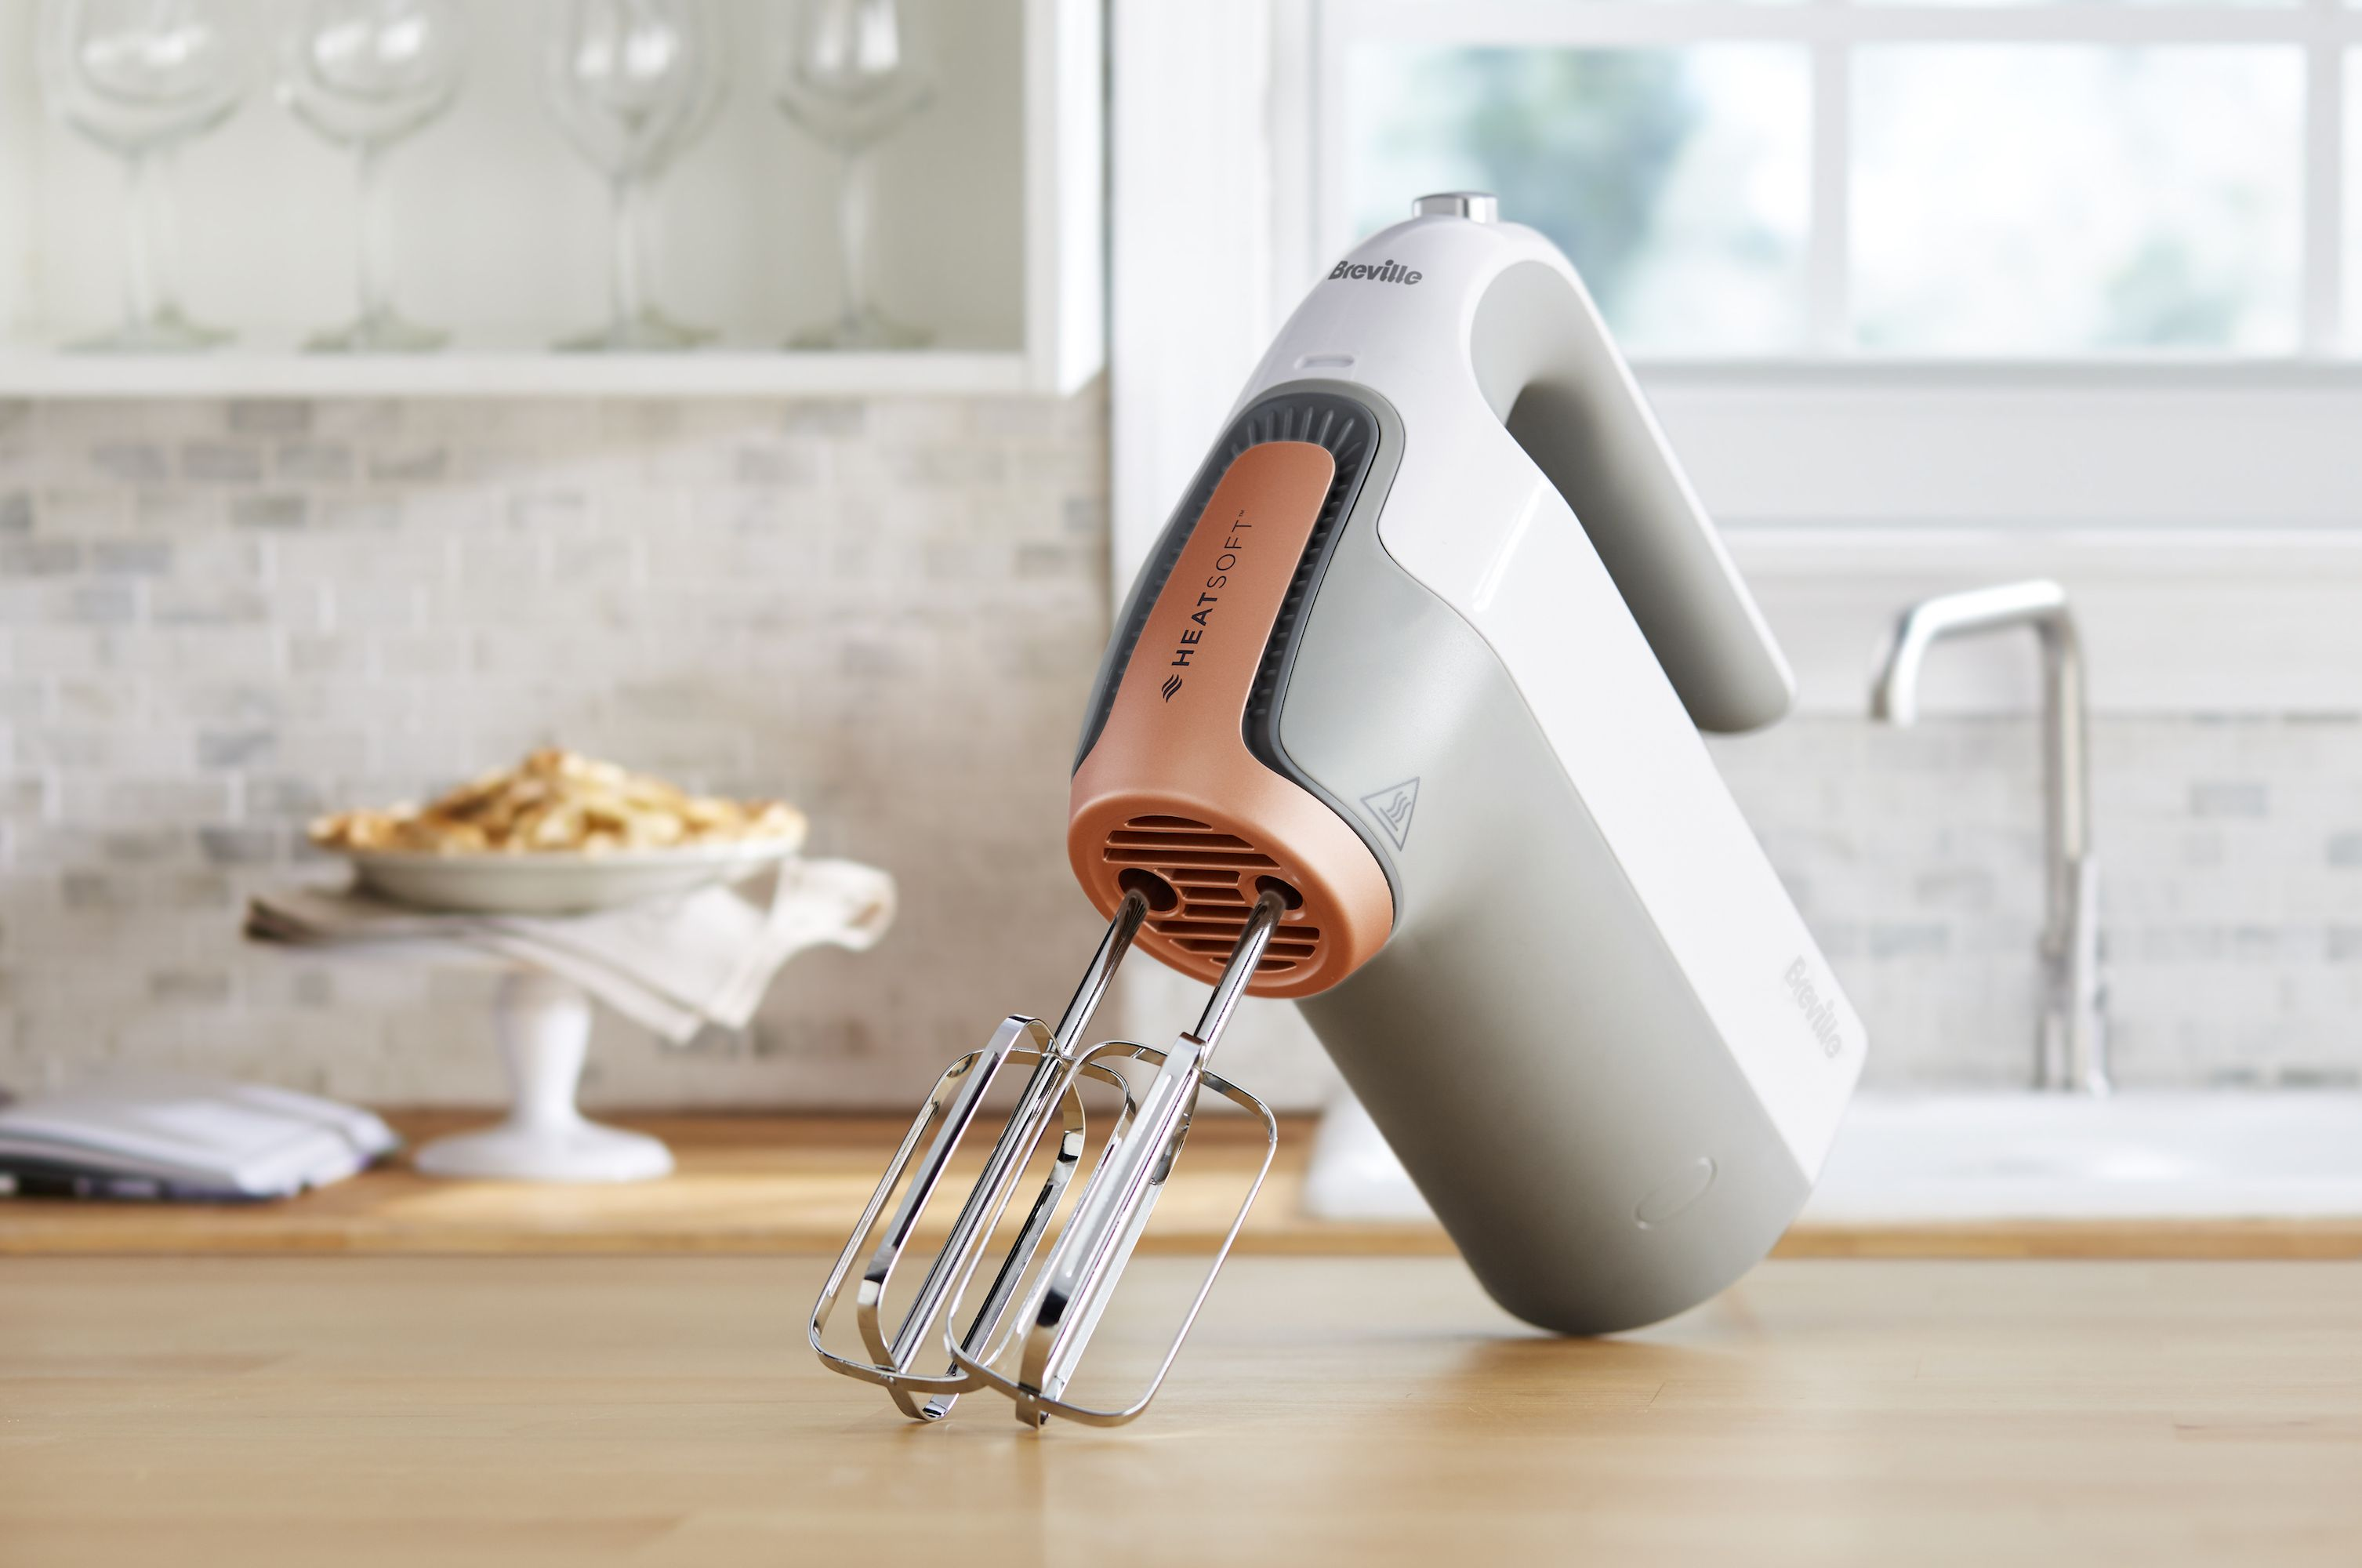 Breville has created a heated whisk that's made to soften butter